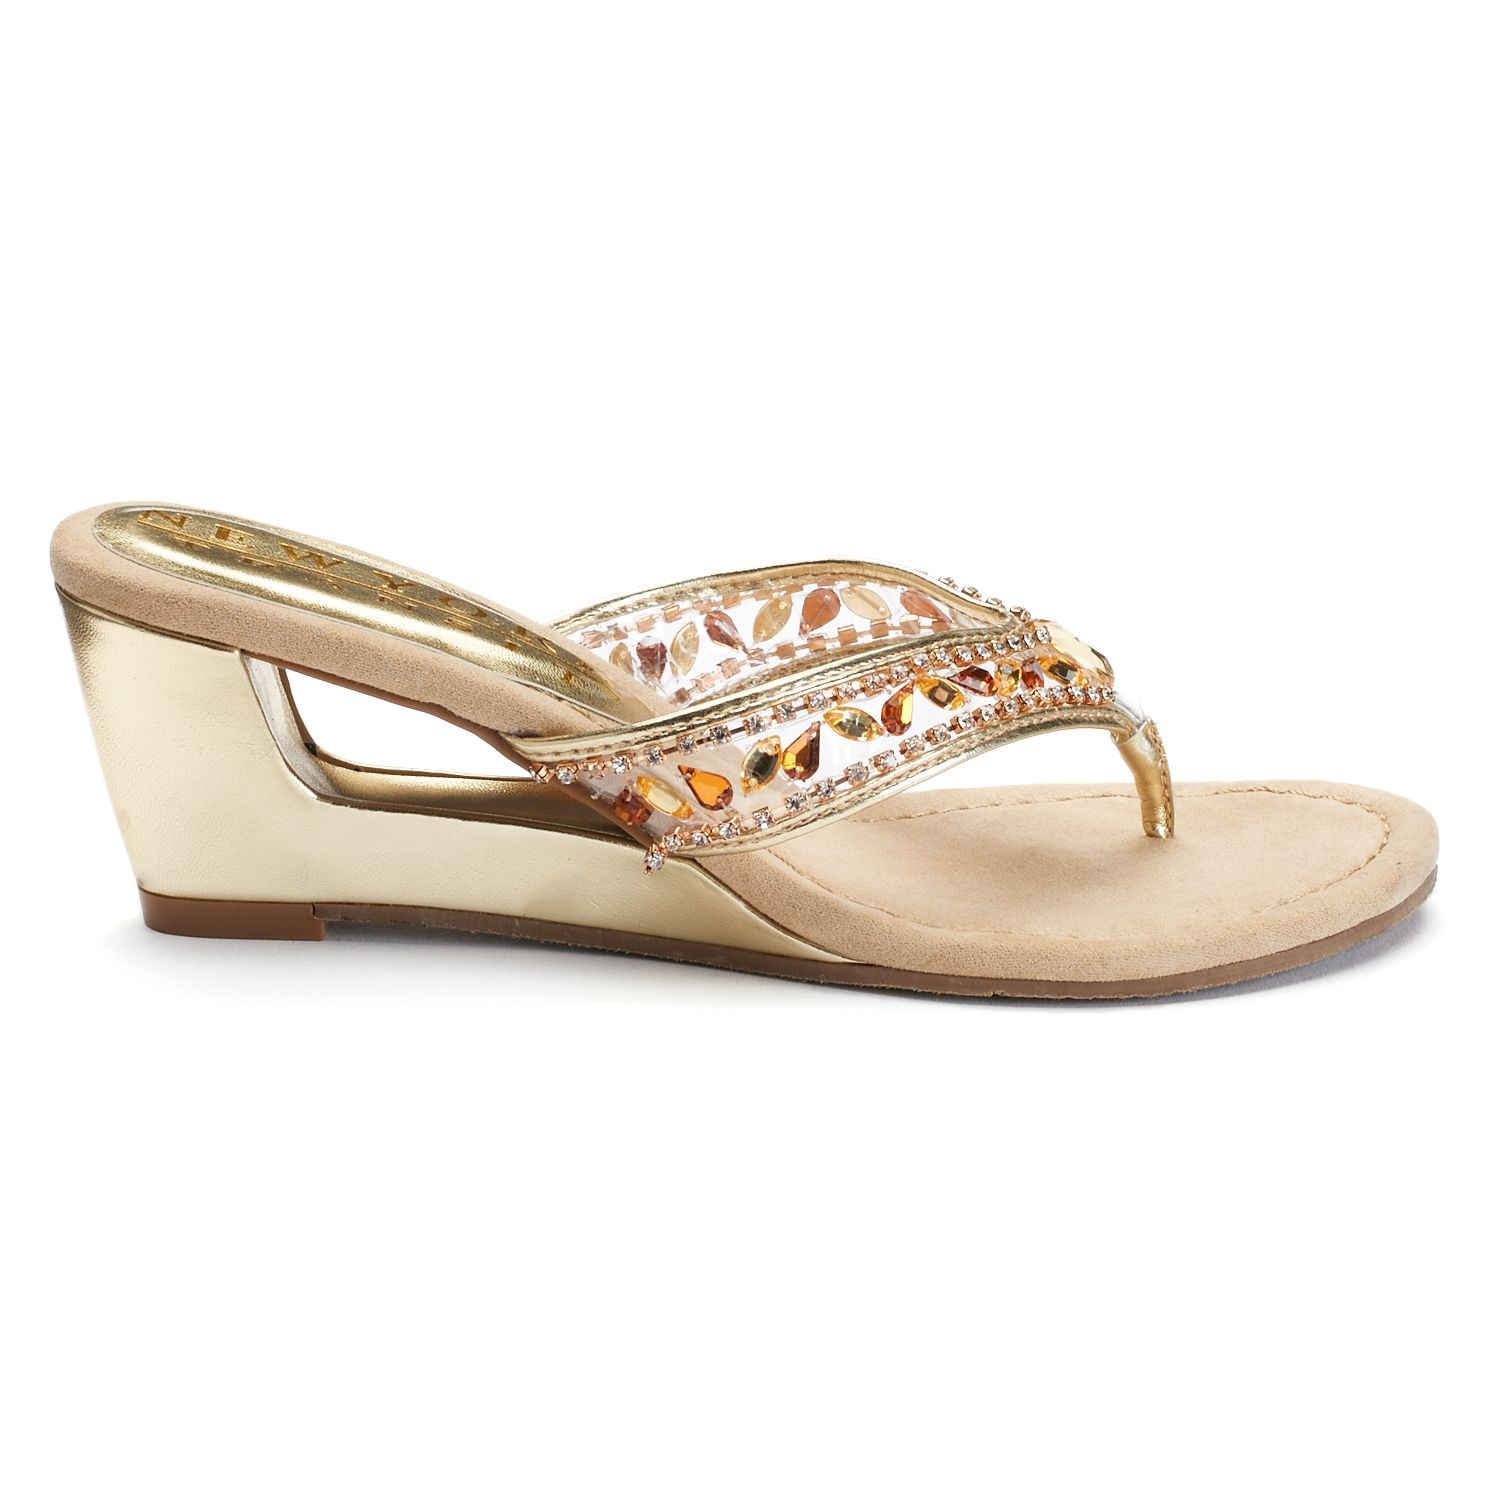 New York Transit Sandals - Shoes  8cee0be35